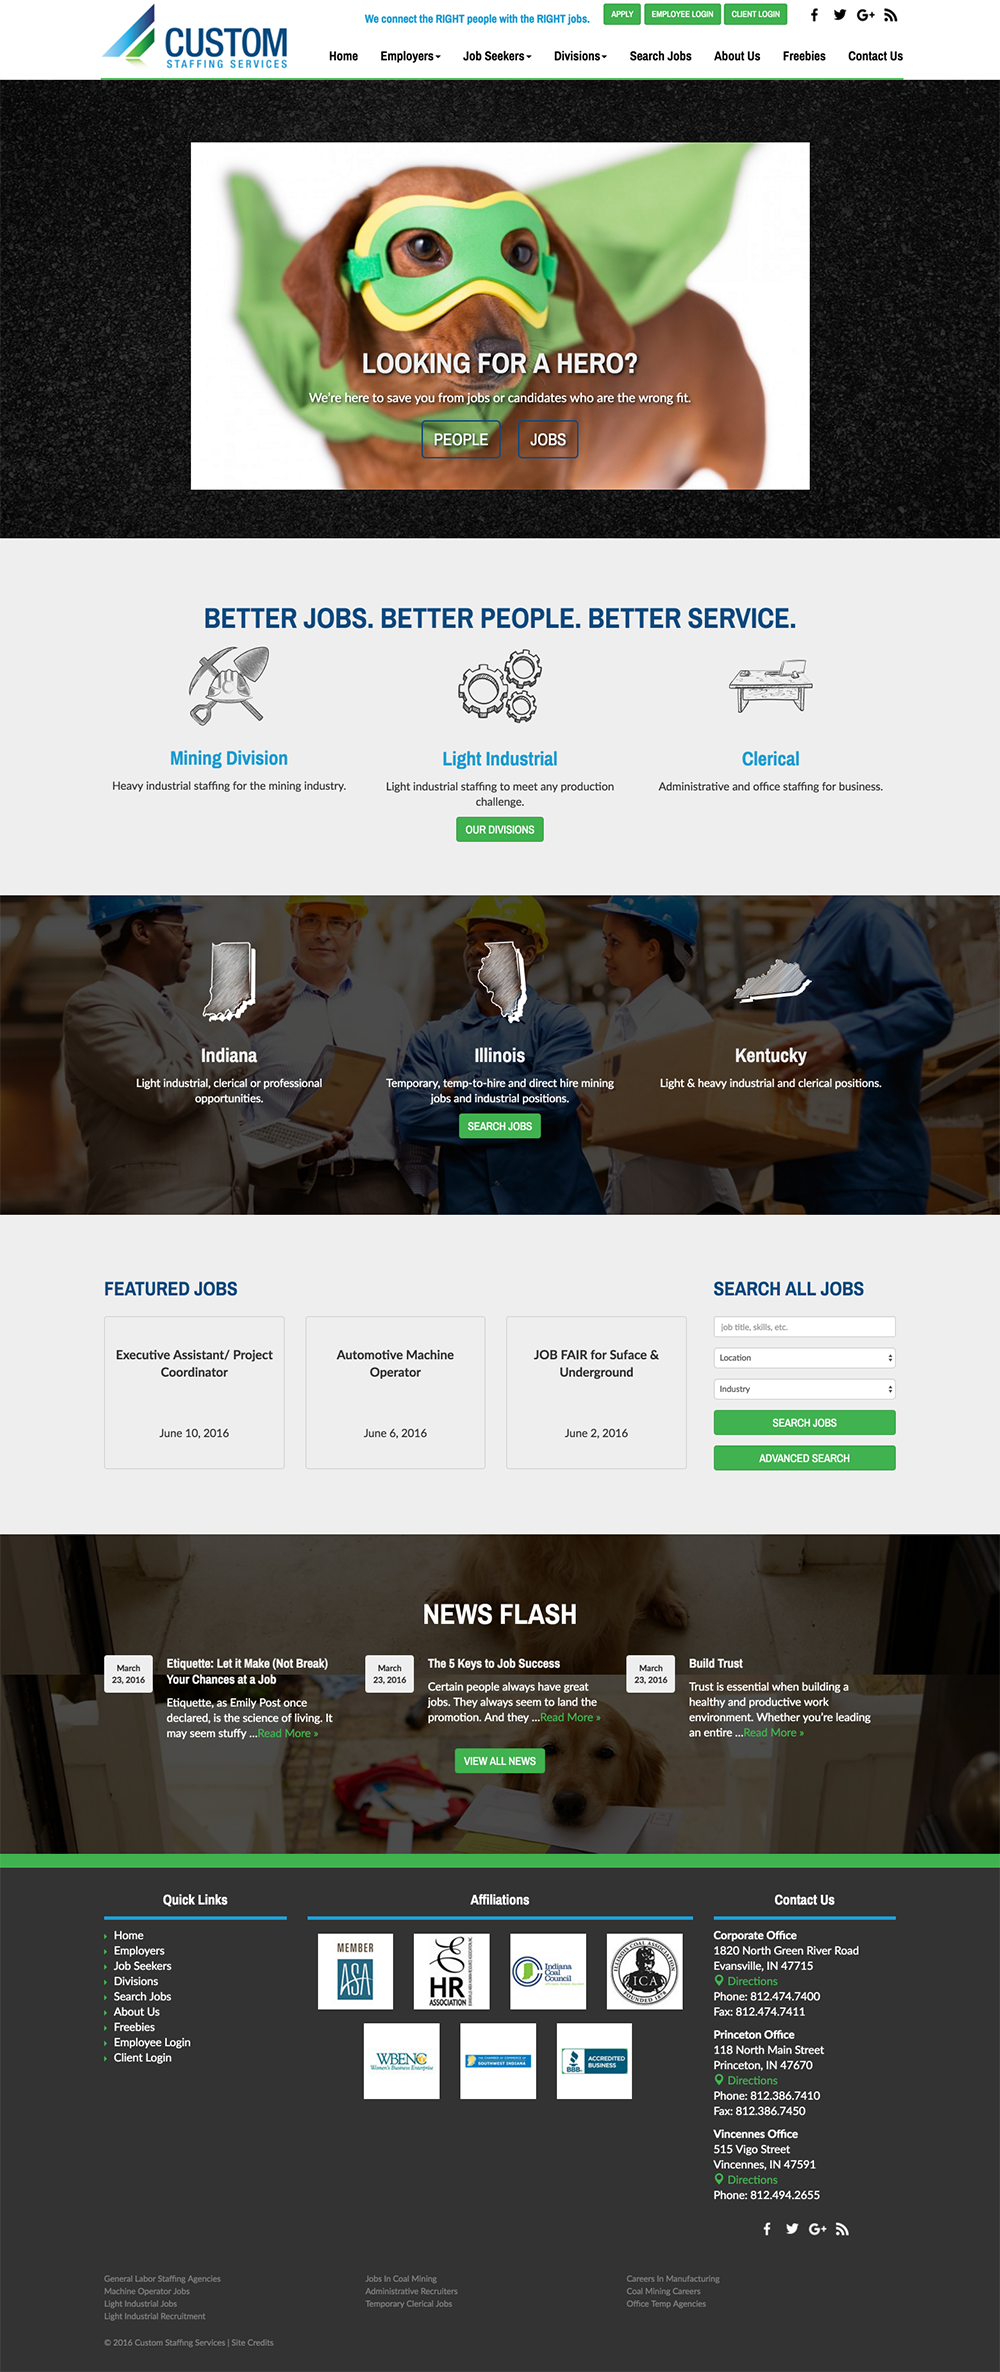 custom-staffing-website